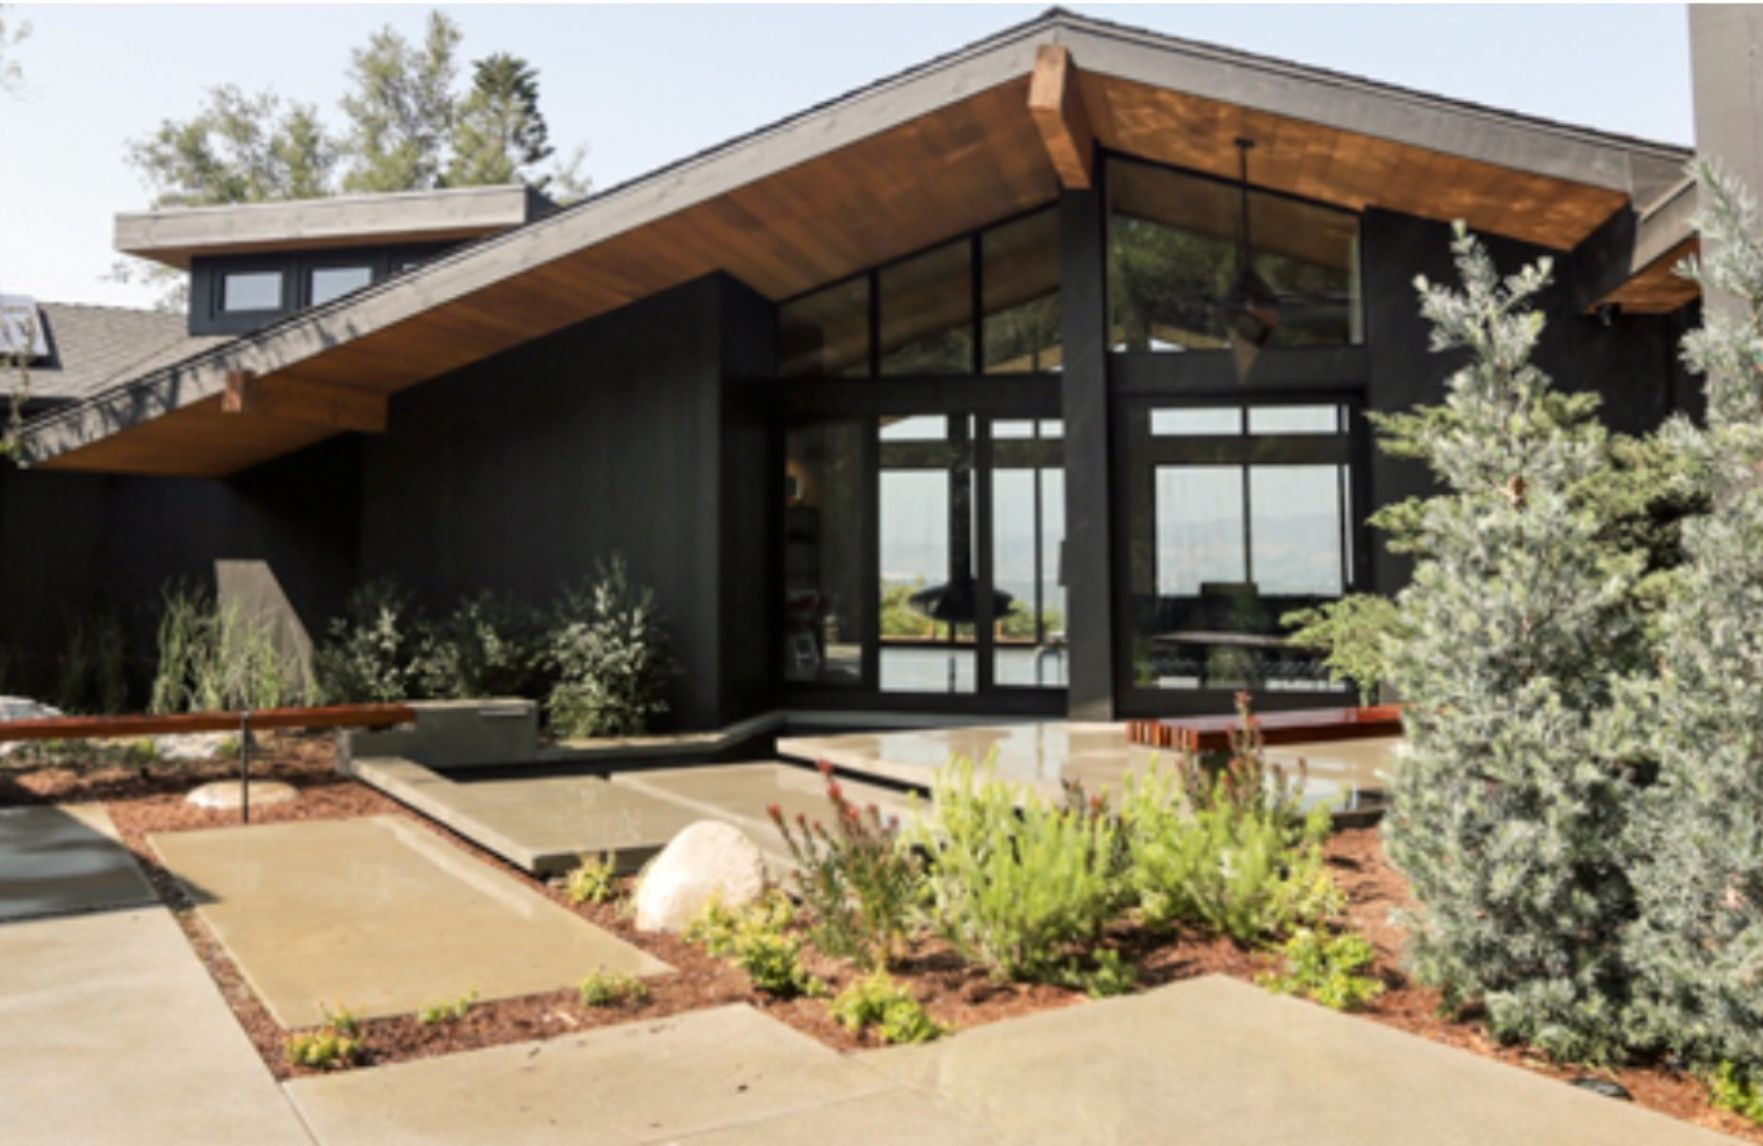 Landscaping is awesome jennie garth modern rustic homes midcentury modern modern farmhouse